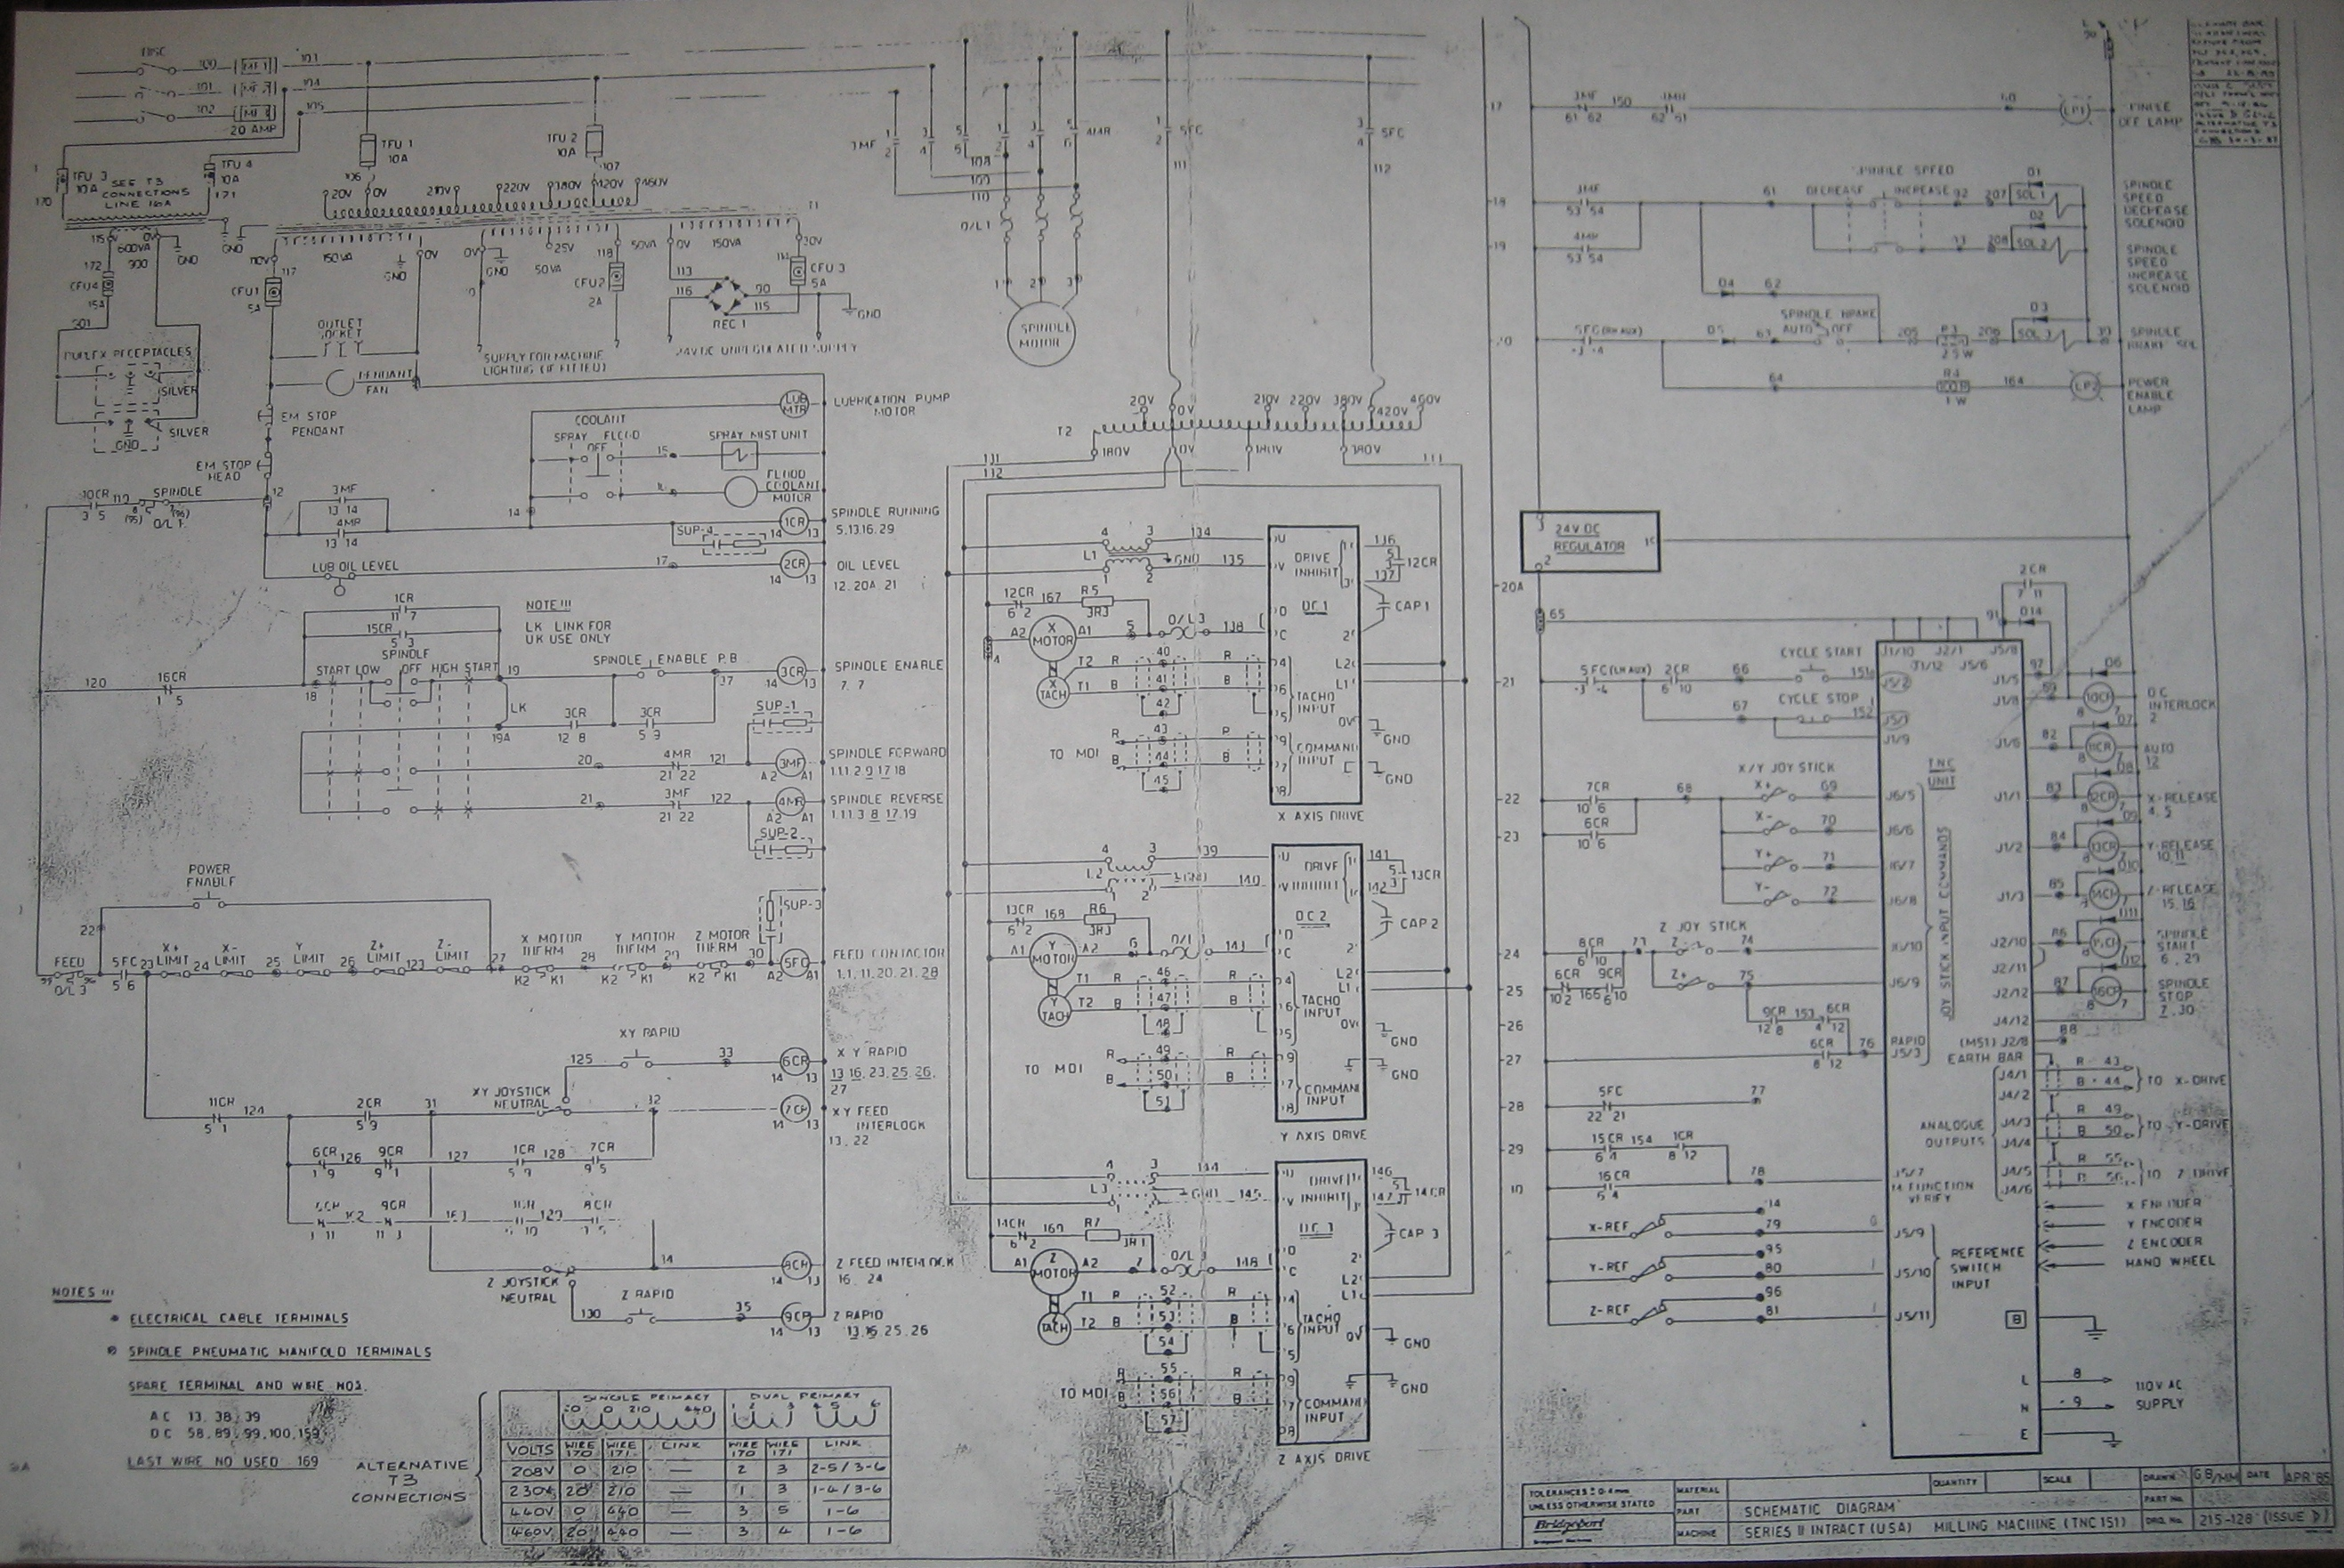 Limit Switches Emc And Inhibits Switch Wiring Diagram In Series Http Igorchudovcom Projects Bridgeport Ii Interact 2 Cnc Mill 07 Schematic Lower Left Corner Near Power Enable Button